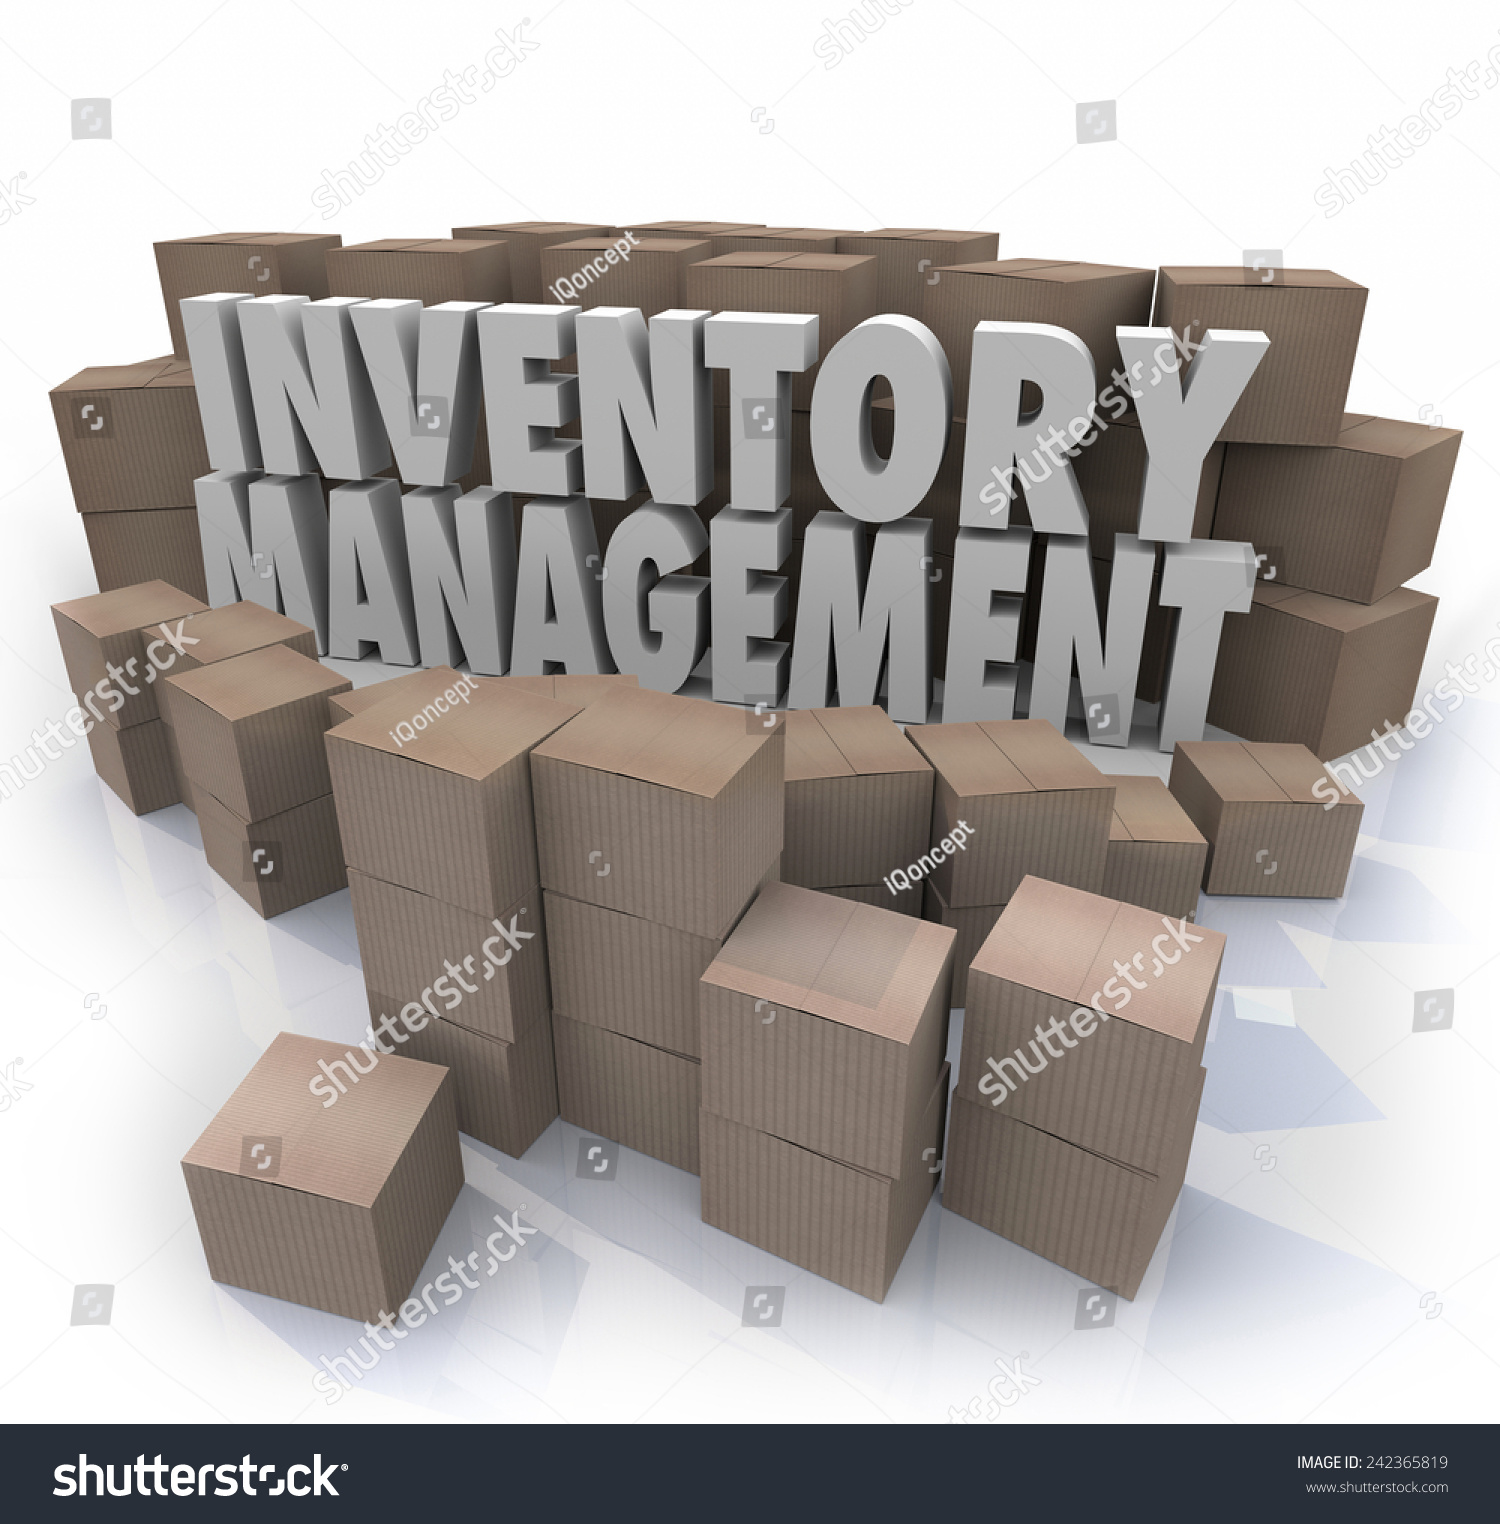 operational management inventory management Introduction procurement and inventory management form the interfaces in today's supply chains of industrial goods as the global division of work is still increasing in all industries in.